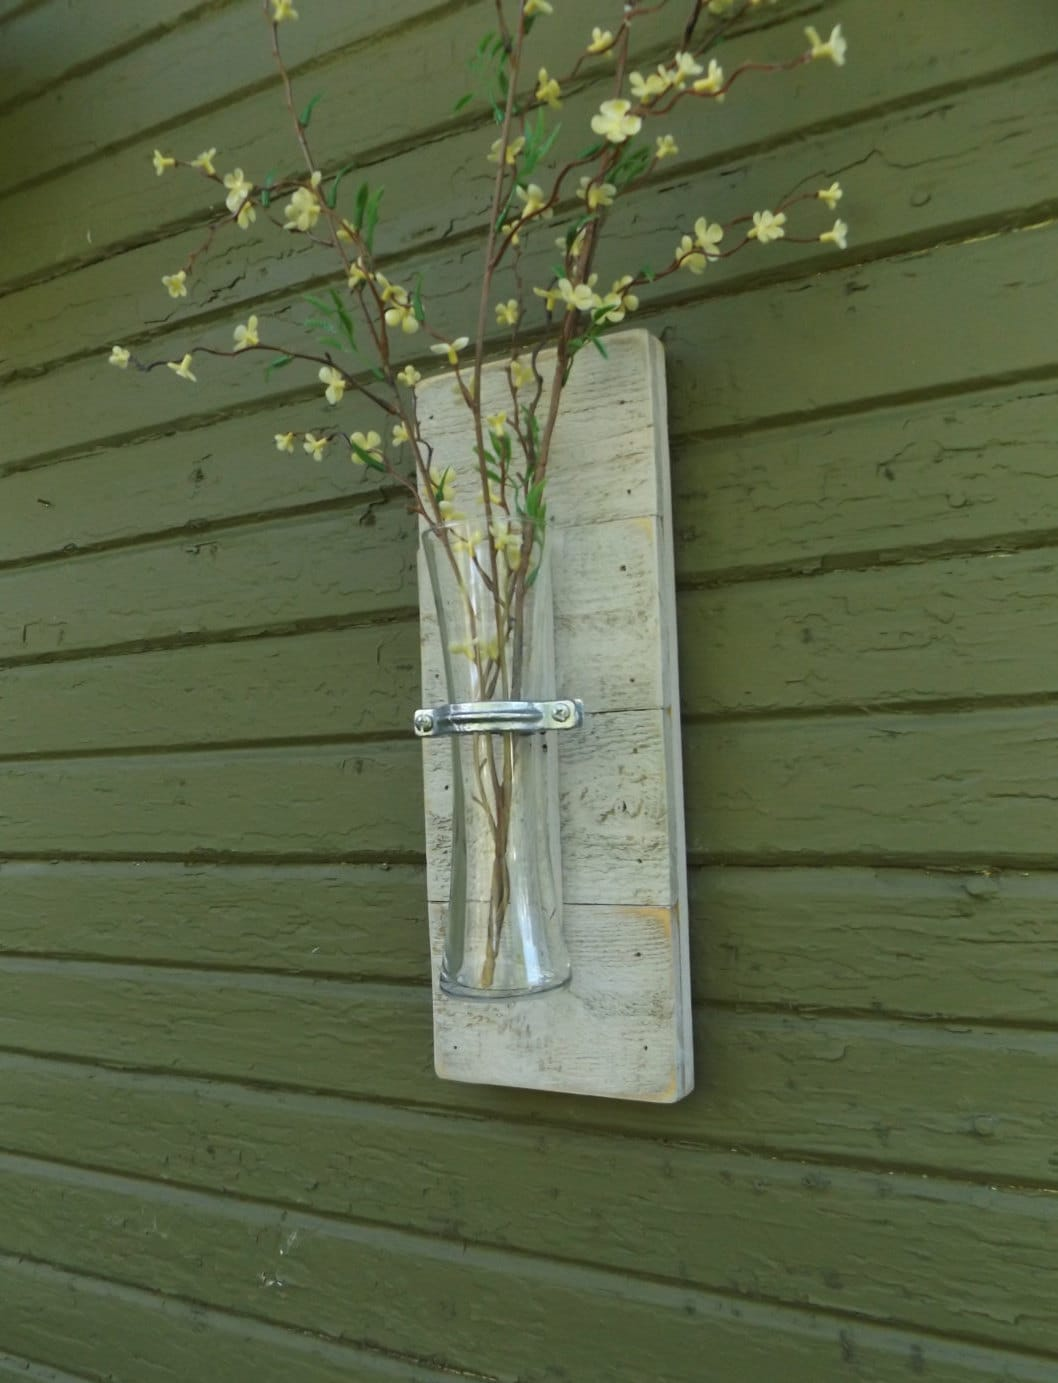 Rustic wall sconce wood wall sconce vase sconce white wall description this rustic wood wall sconce reviewsmspy